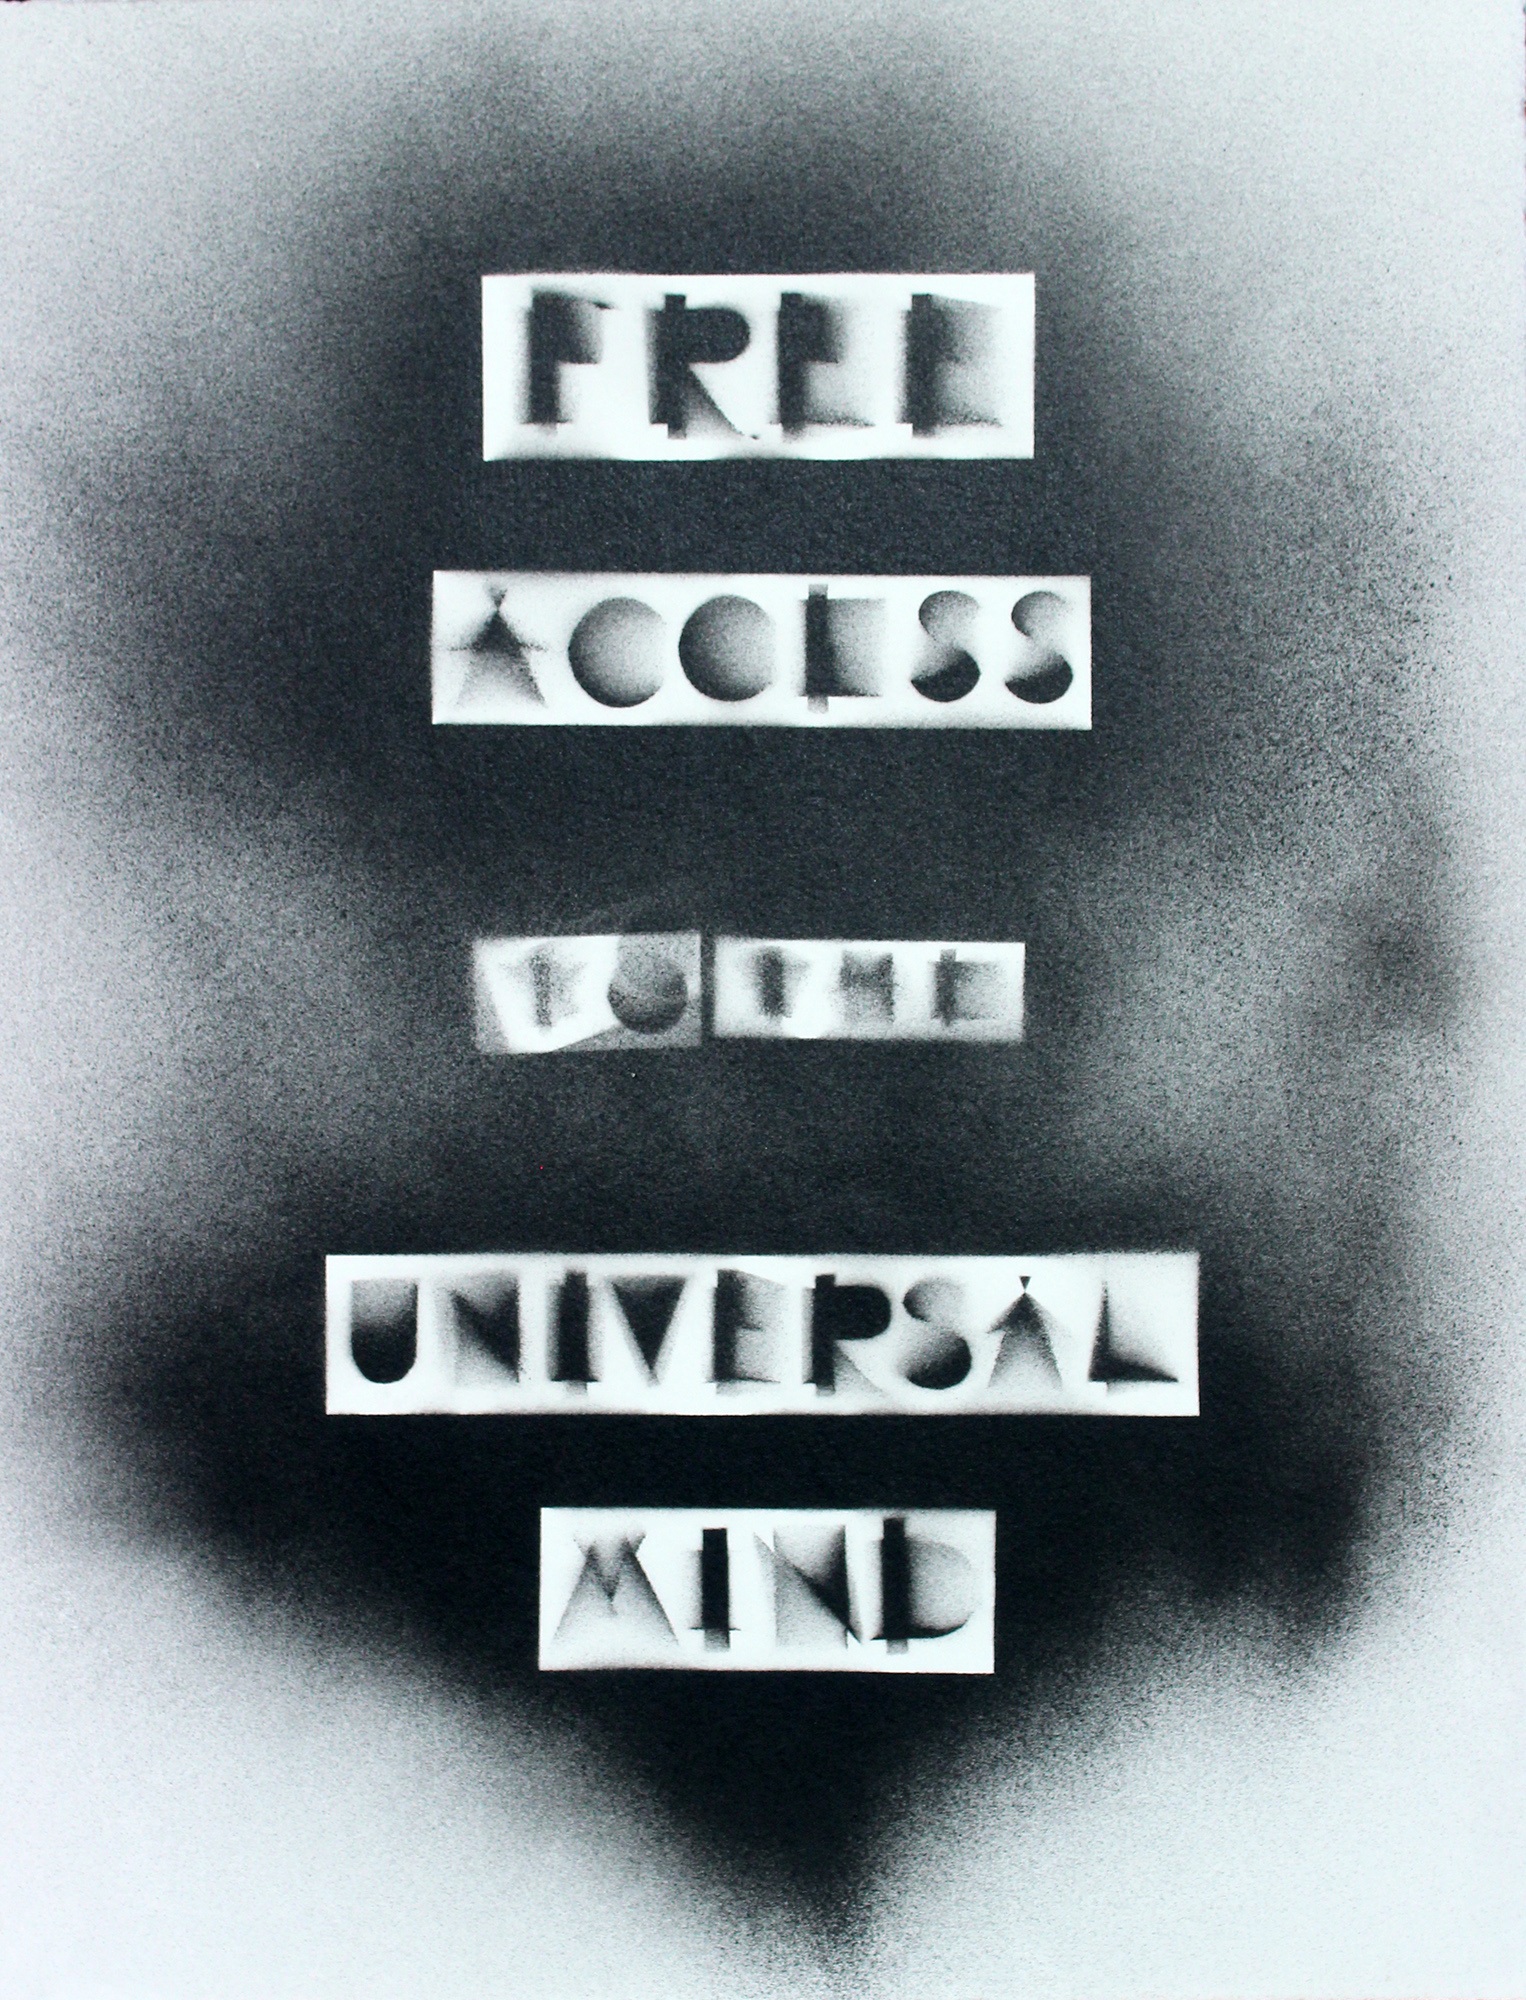 Free_Access_to_the_Universal_Mind.jpg